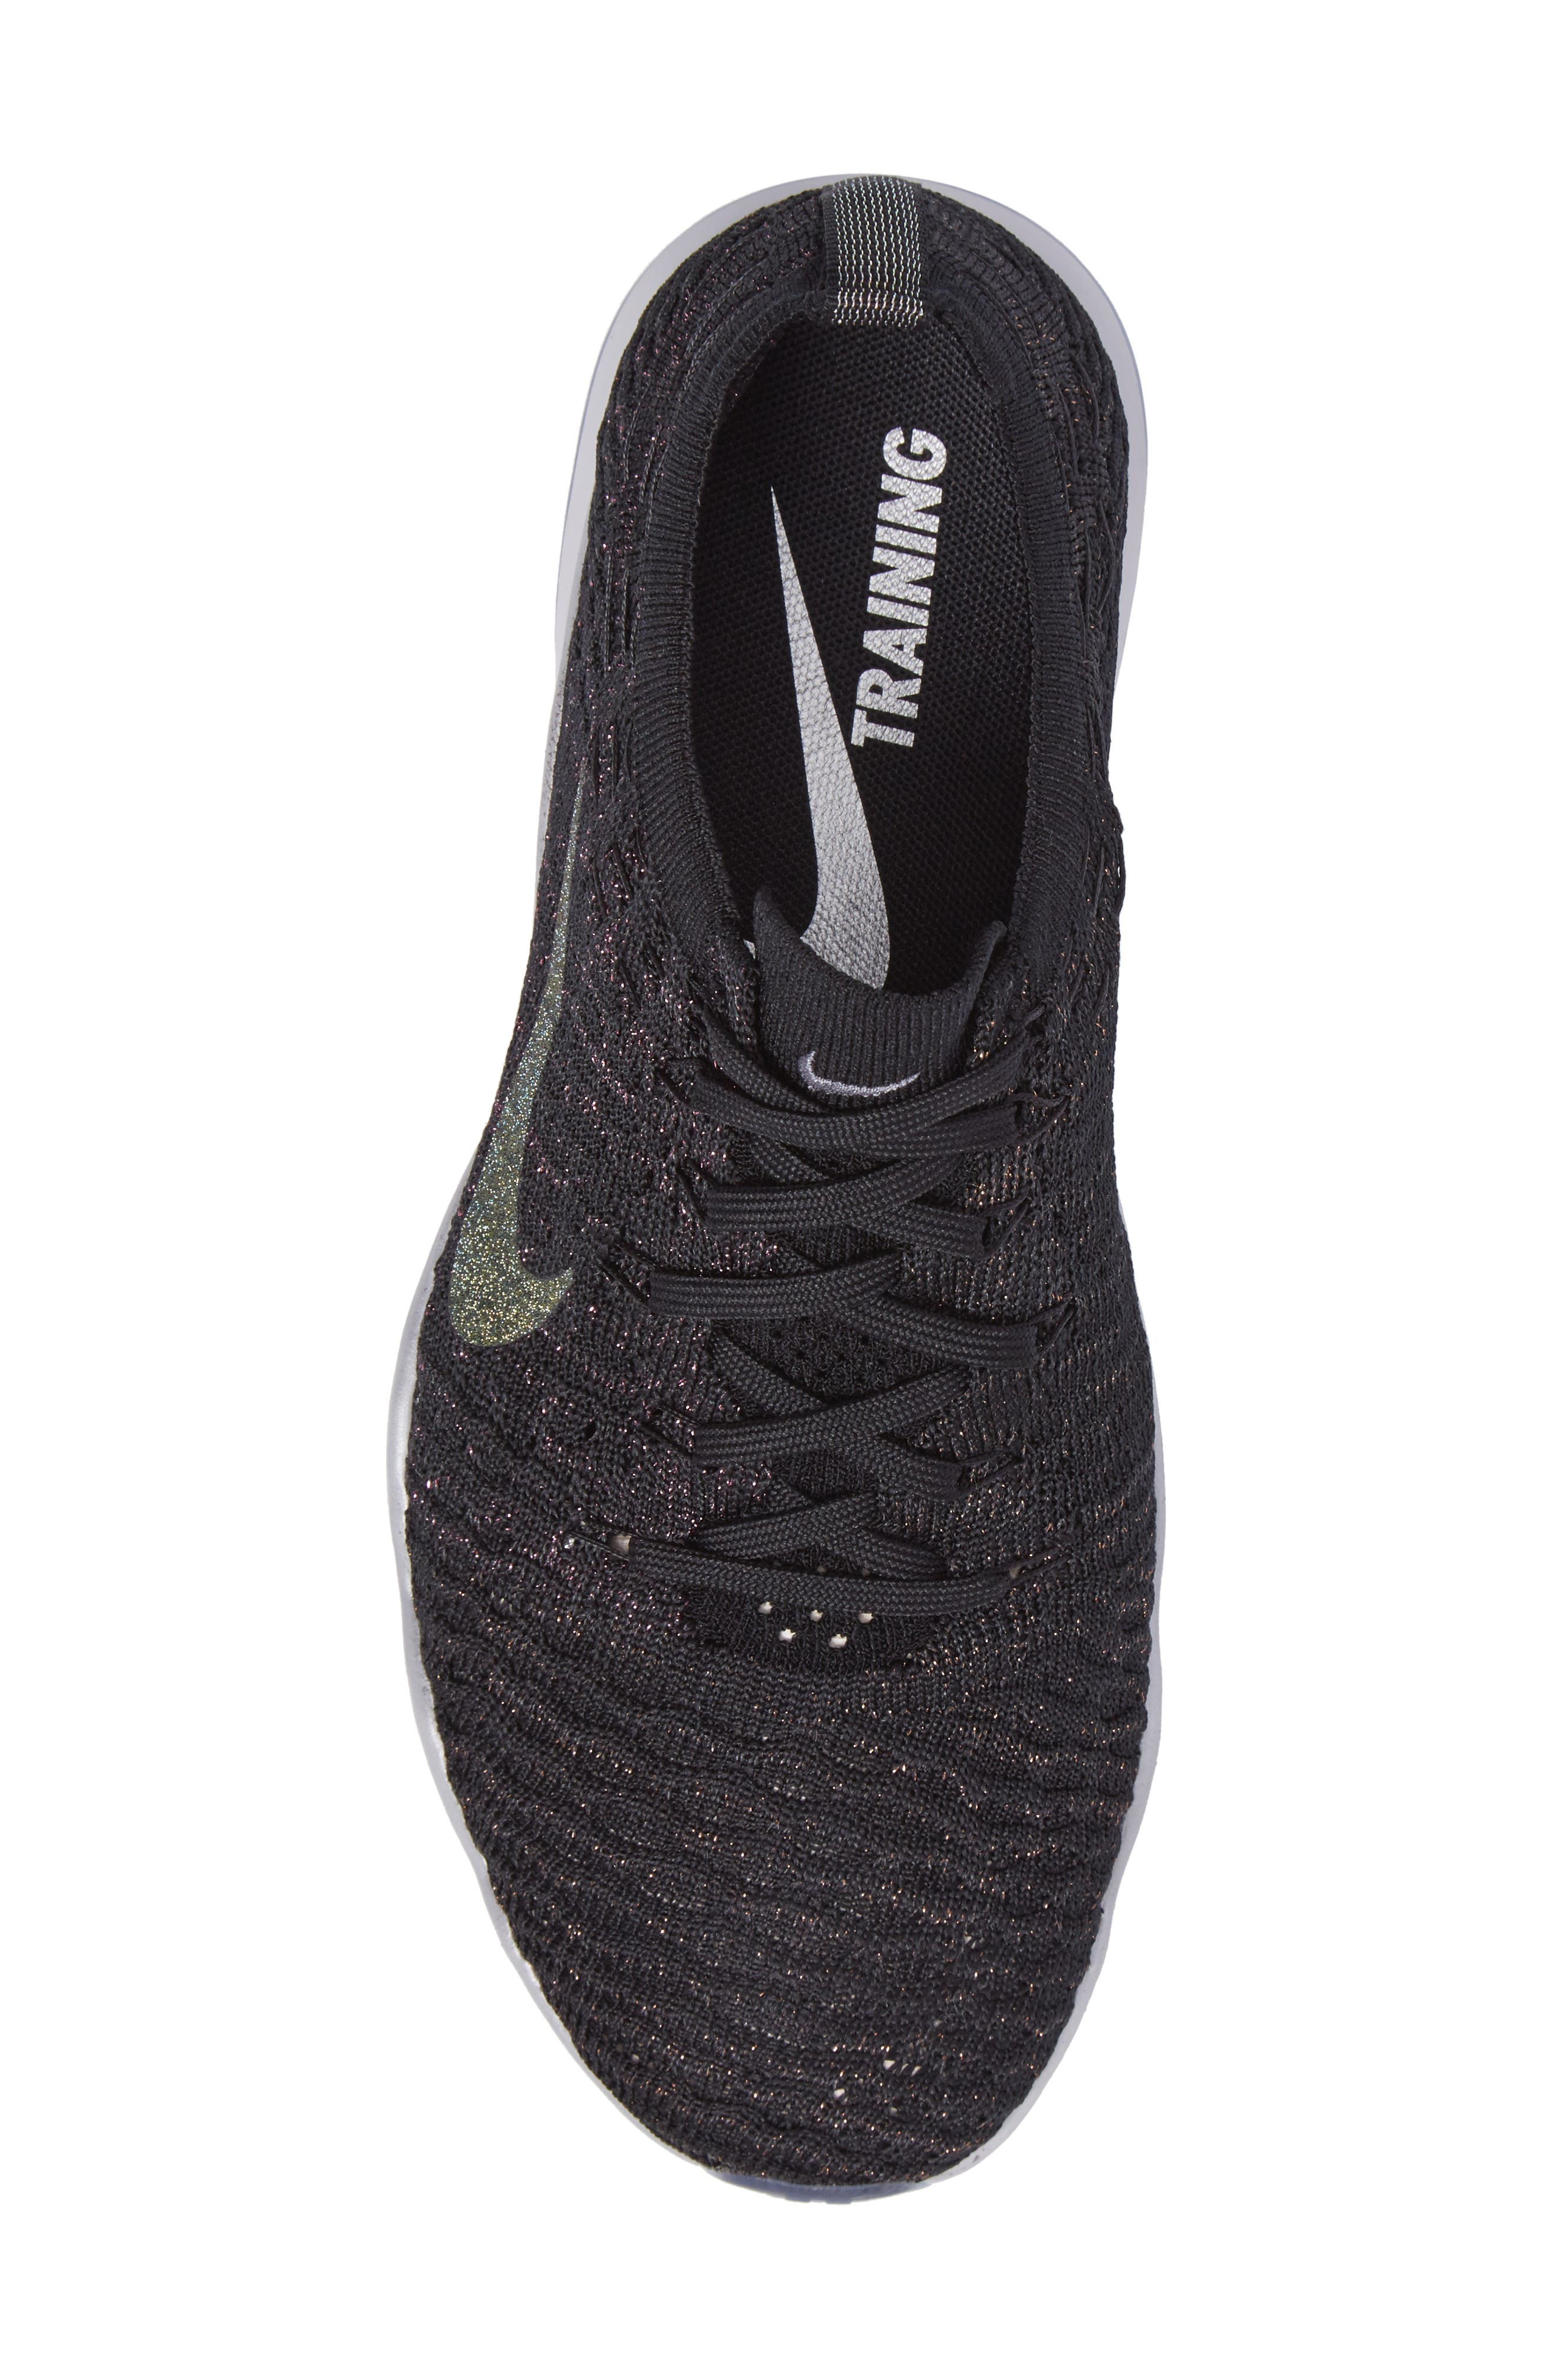 Air Zoom Fearless Flyknit Metallic Training Shoe,                             Alternate thumbnail 5, color,                             Black/ Dark Grey/ Silver